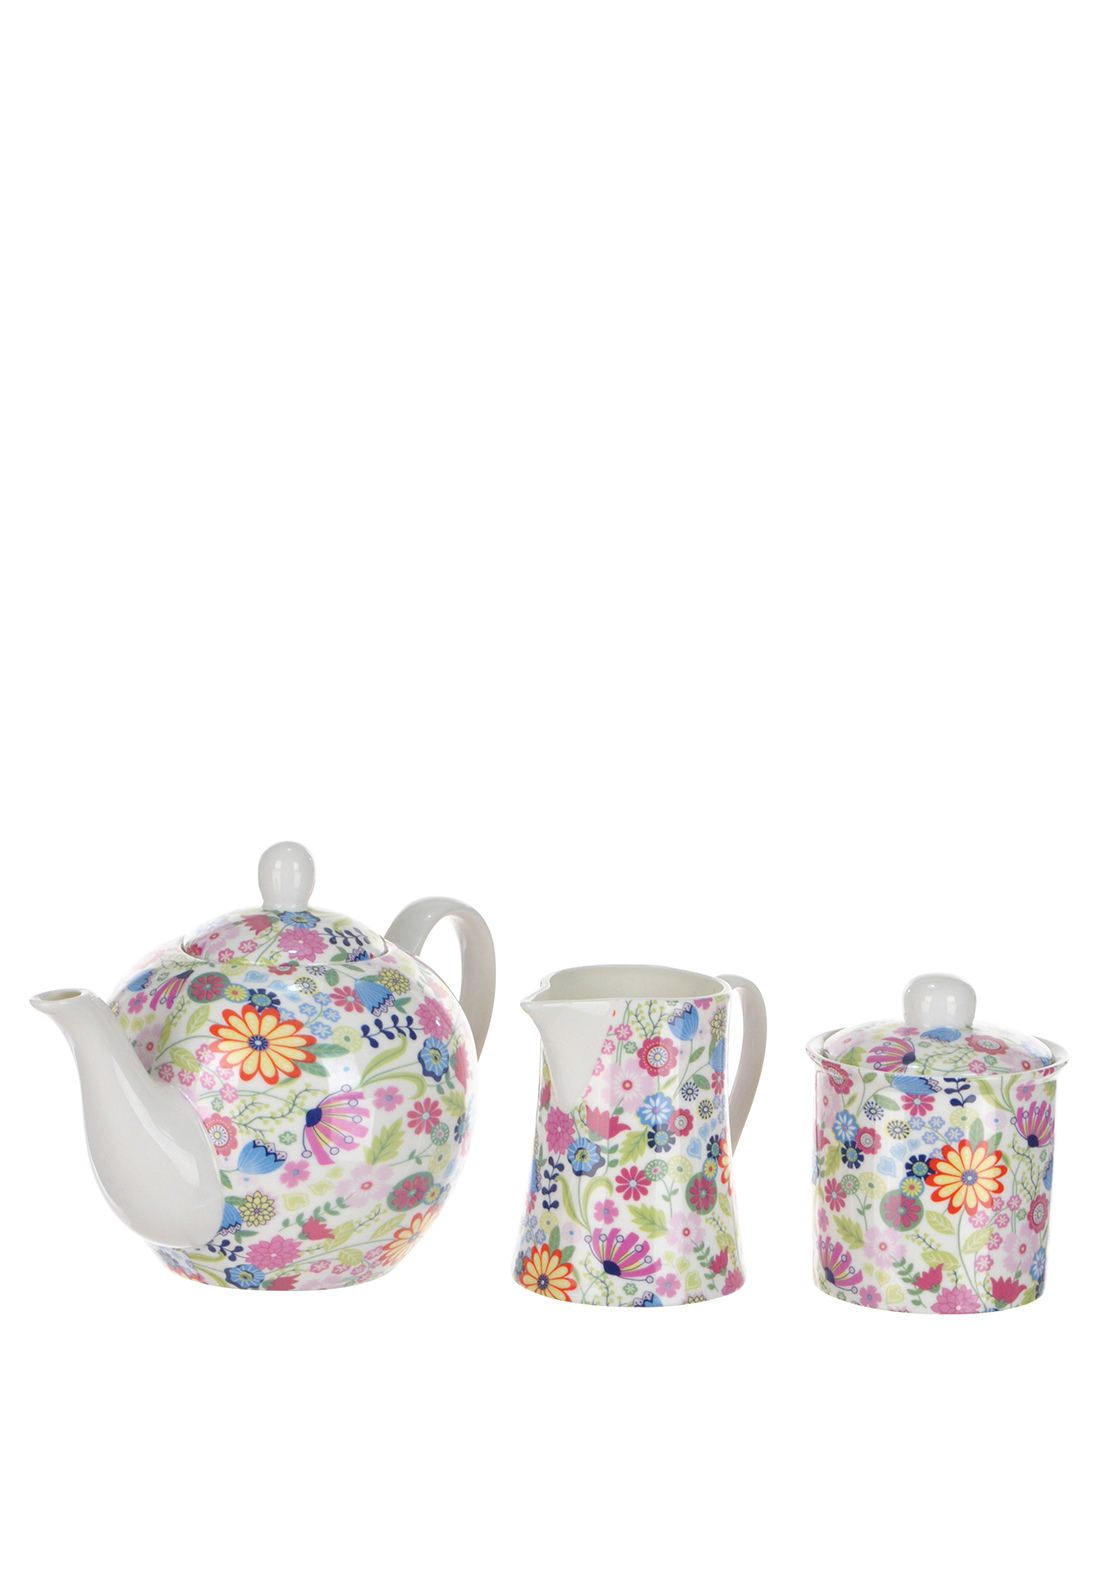 Shannon Bridge Ireland Ditsy Flowery 3 Piece Tea Set, White/Multi floral Design